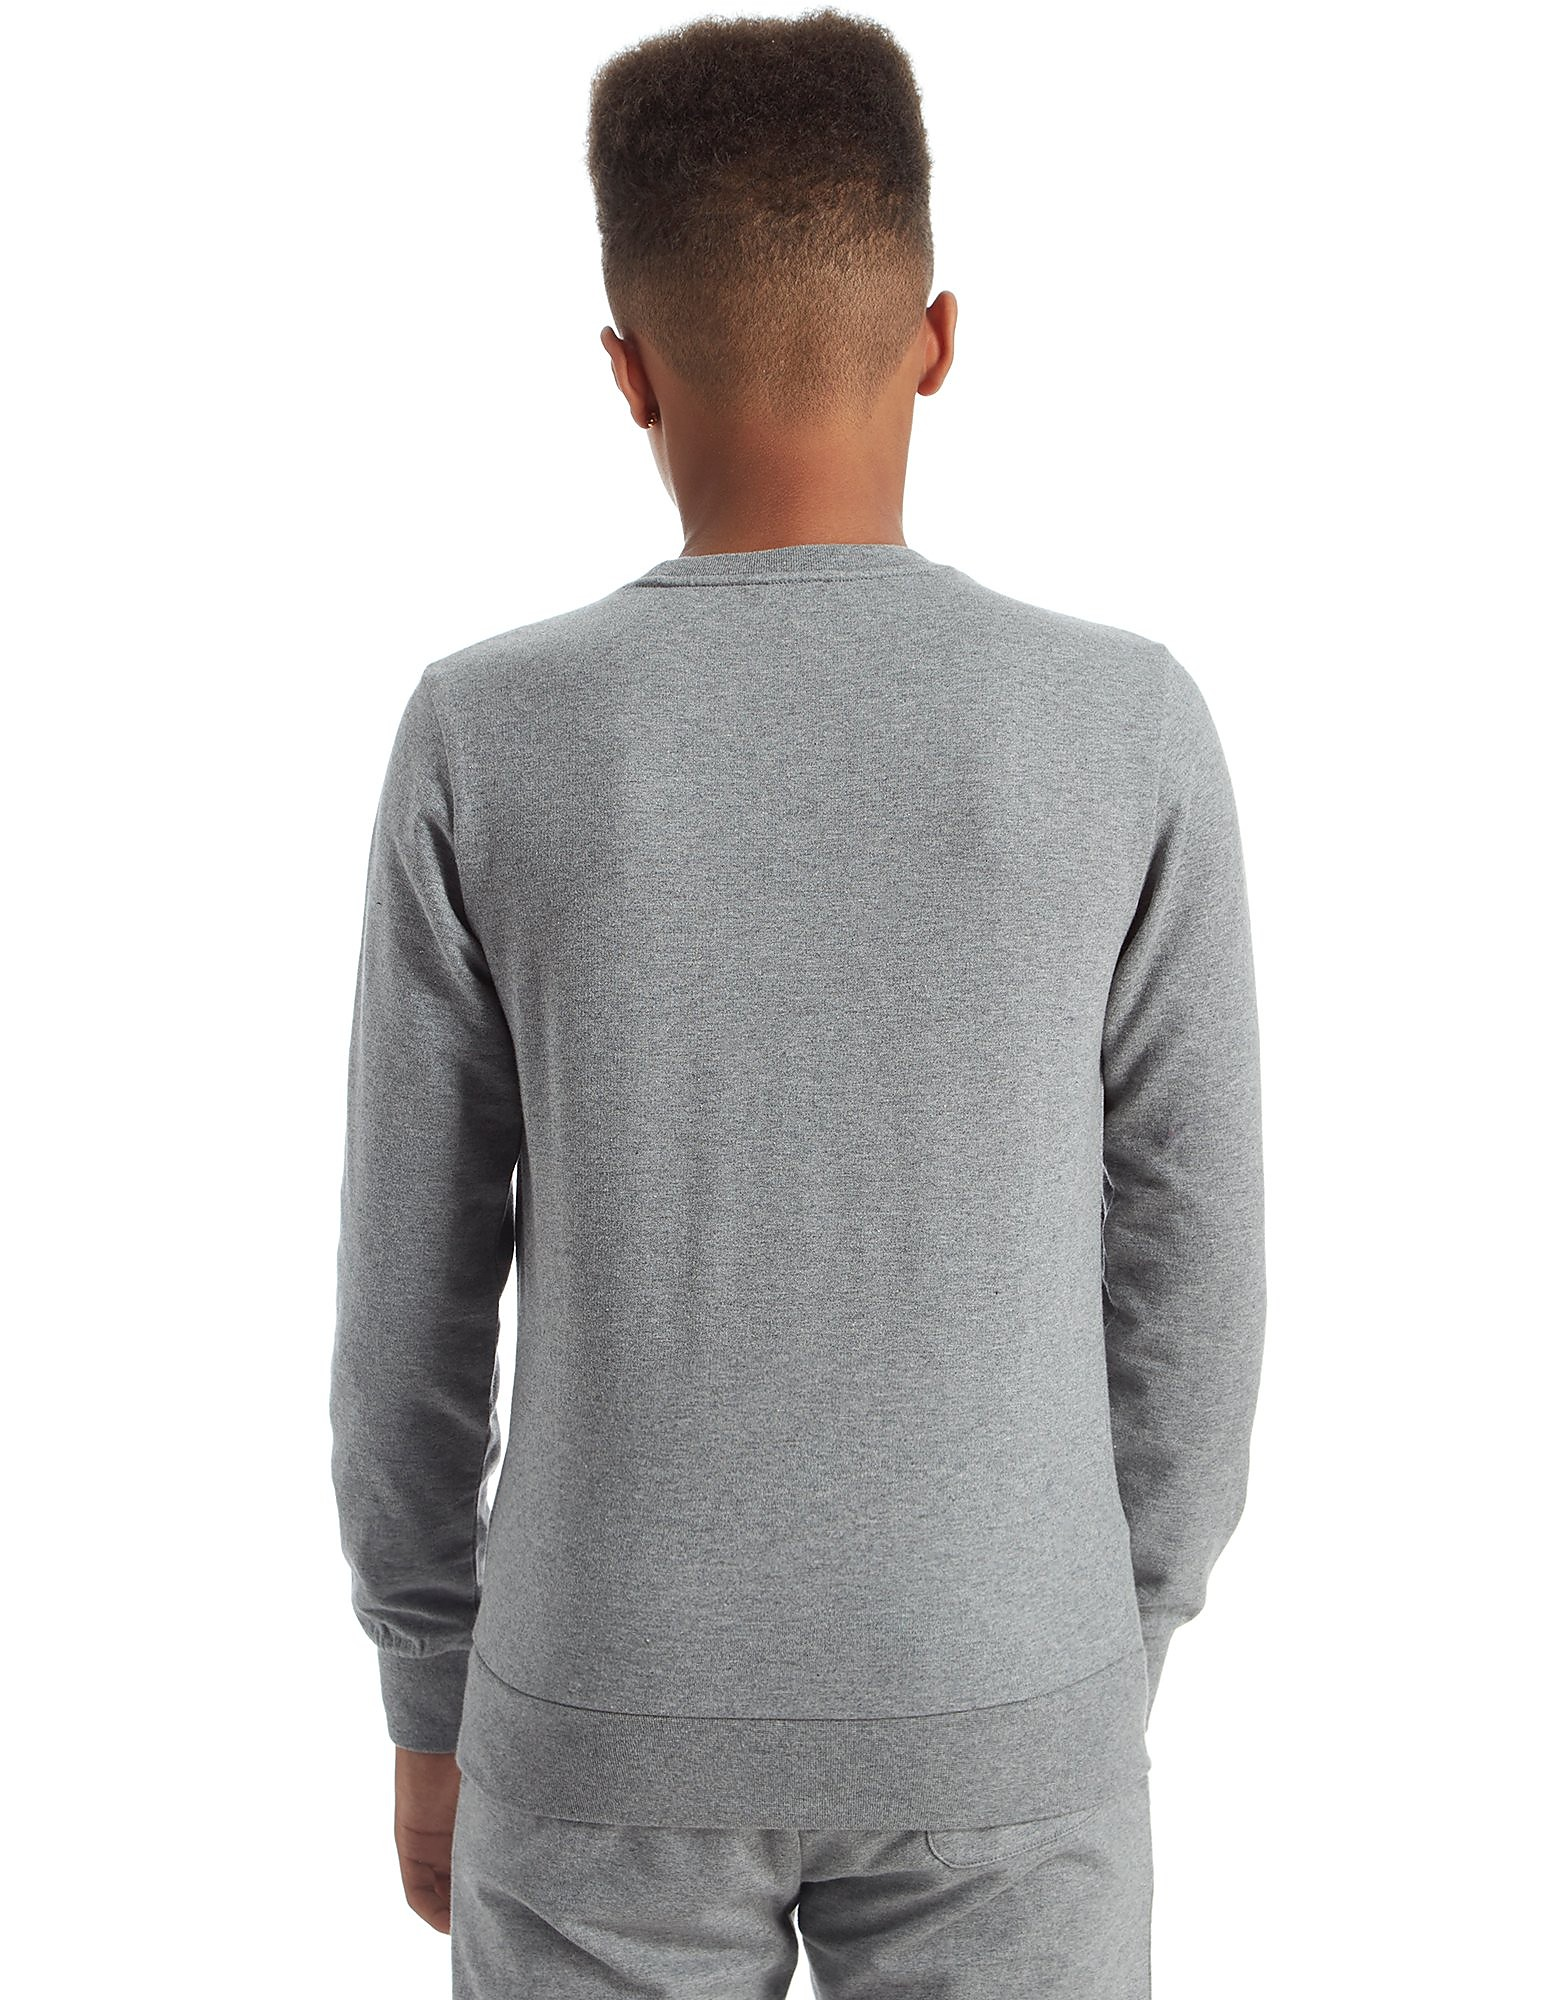 Emporio Armani EA7 Core Crew Sweatshirt Junior